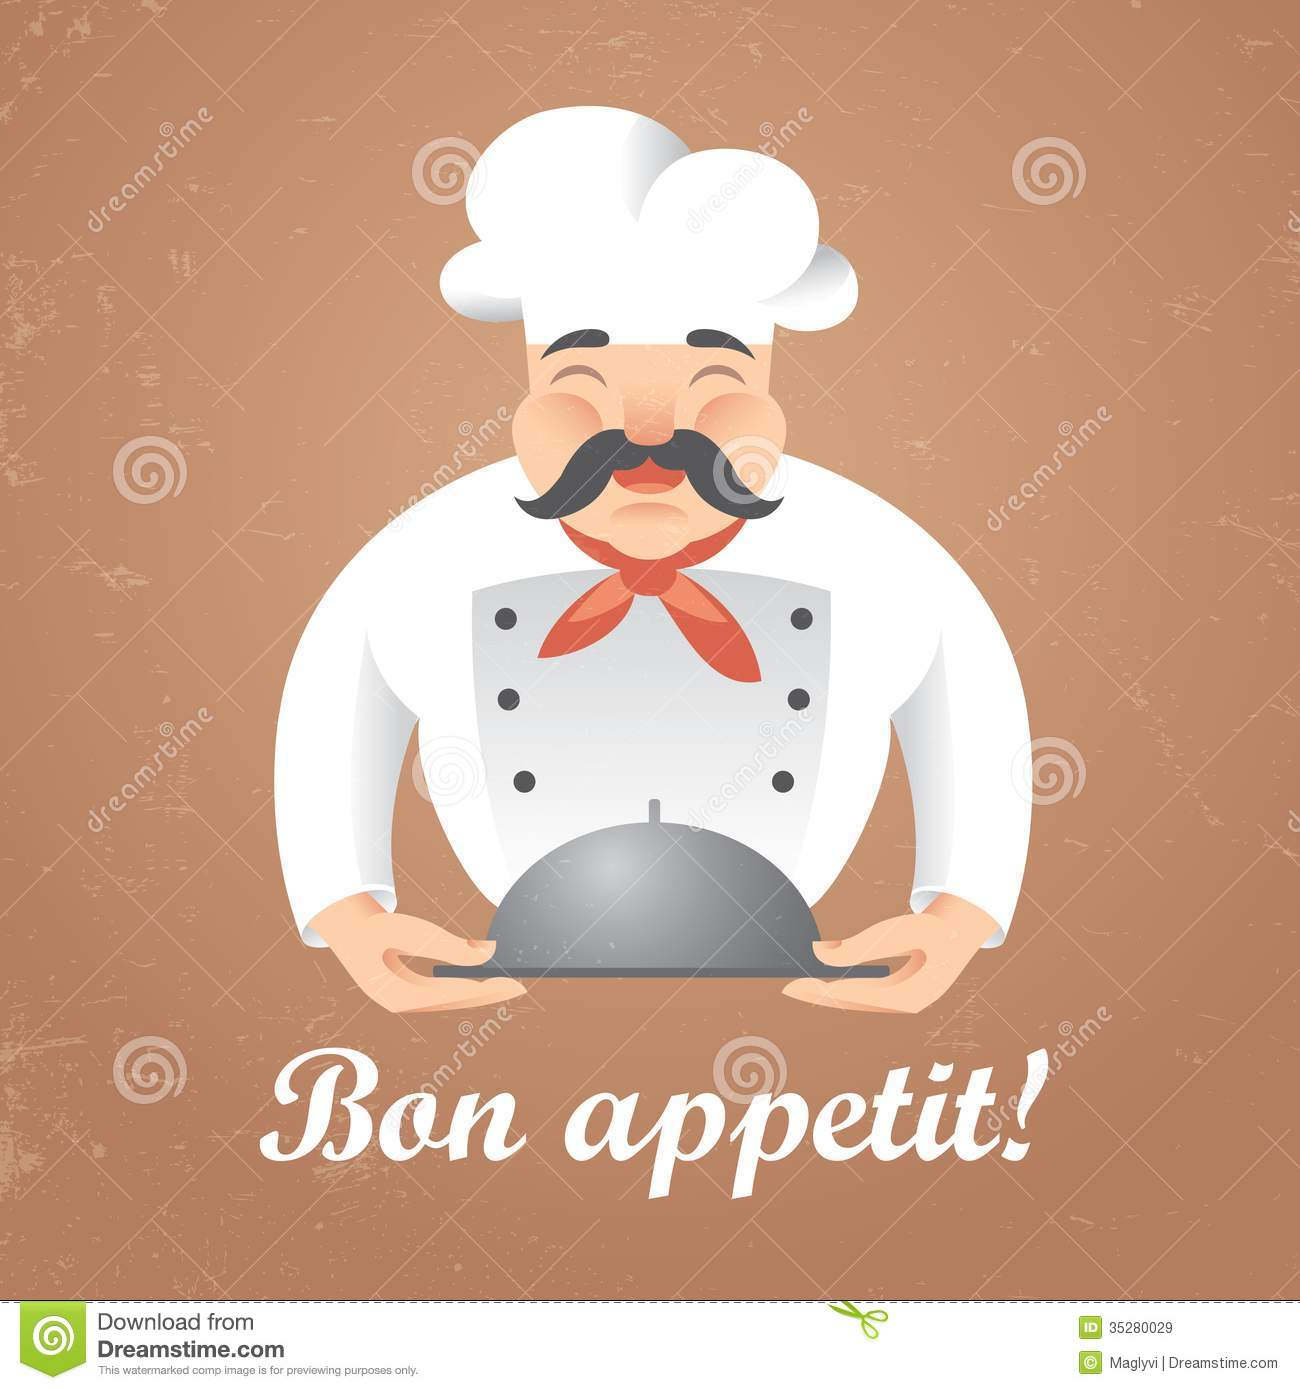 Stylized illustration of funny chef cook holding a tray. Vector.